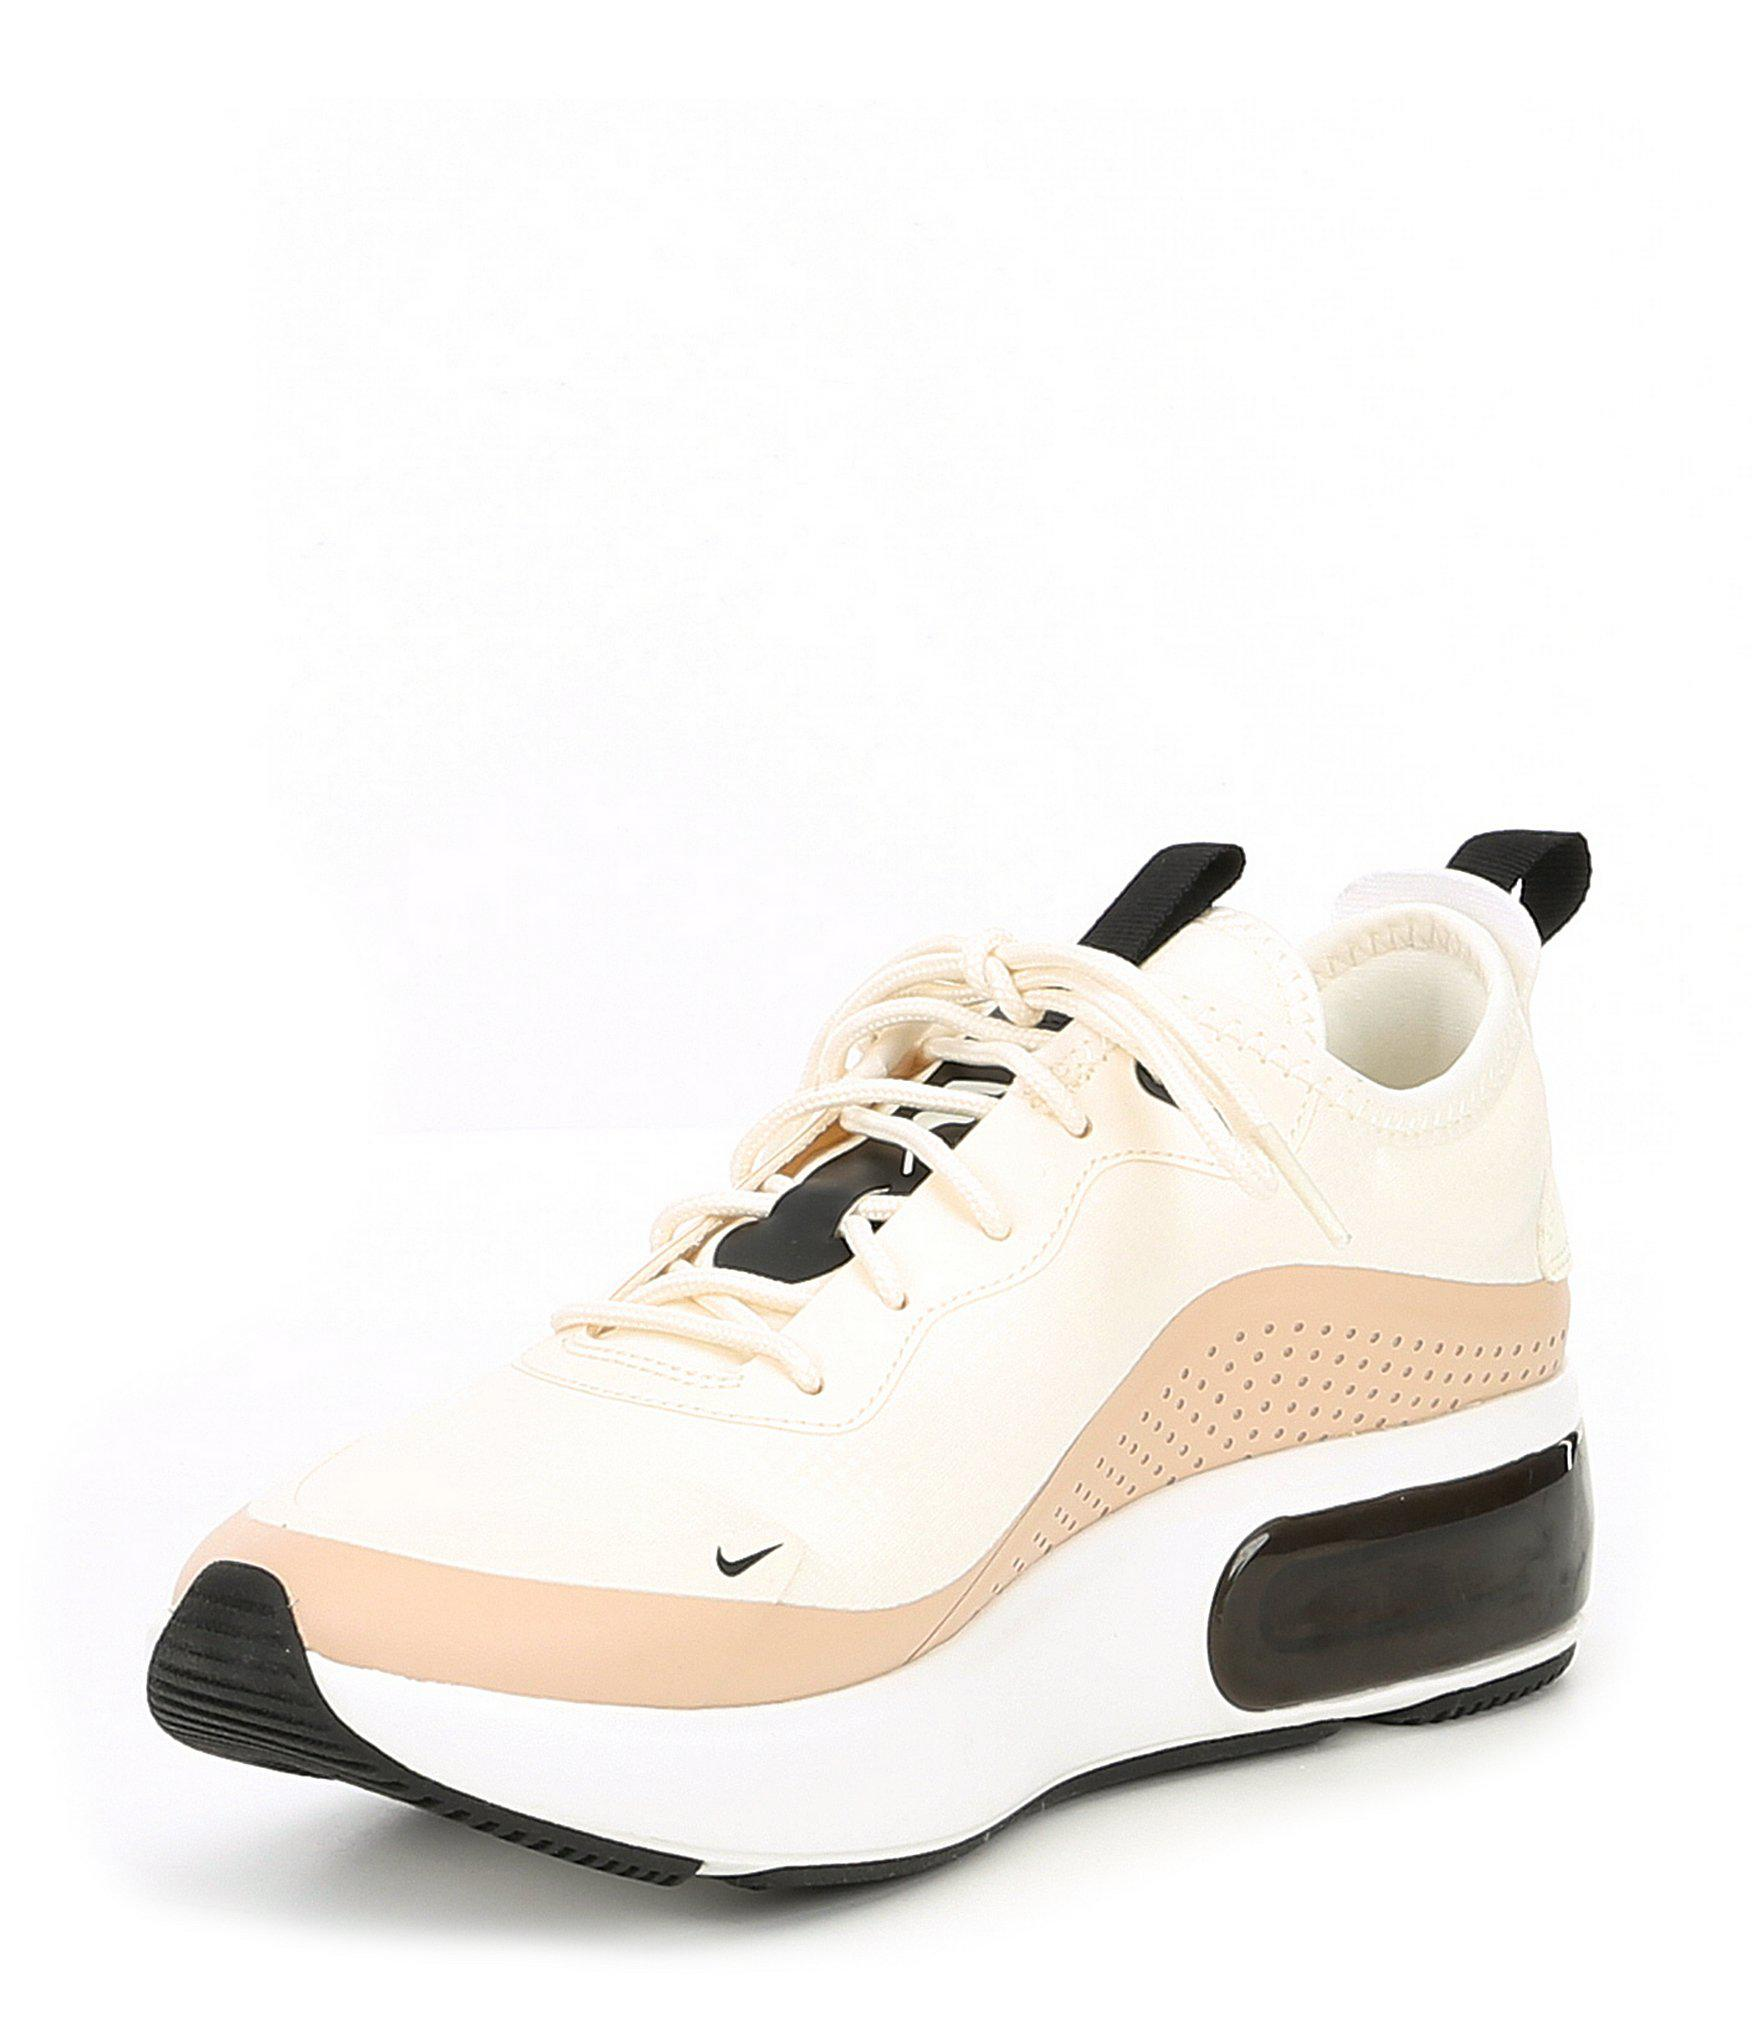 separation shoes 0c1ef 700e0 Nike Women s Air Max Dia Lifestyle Shoe in White - Lyst